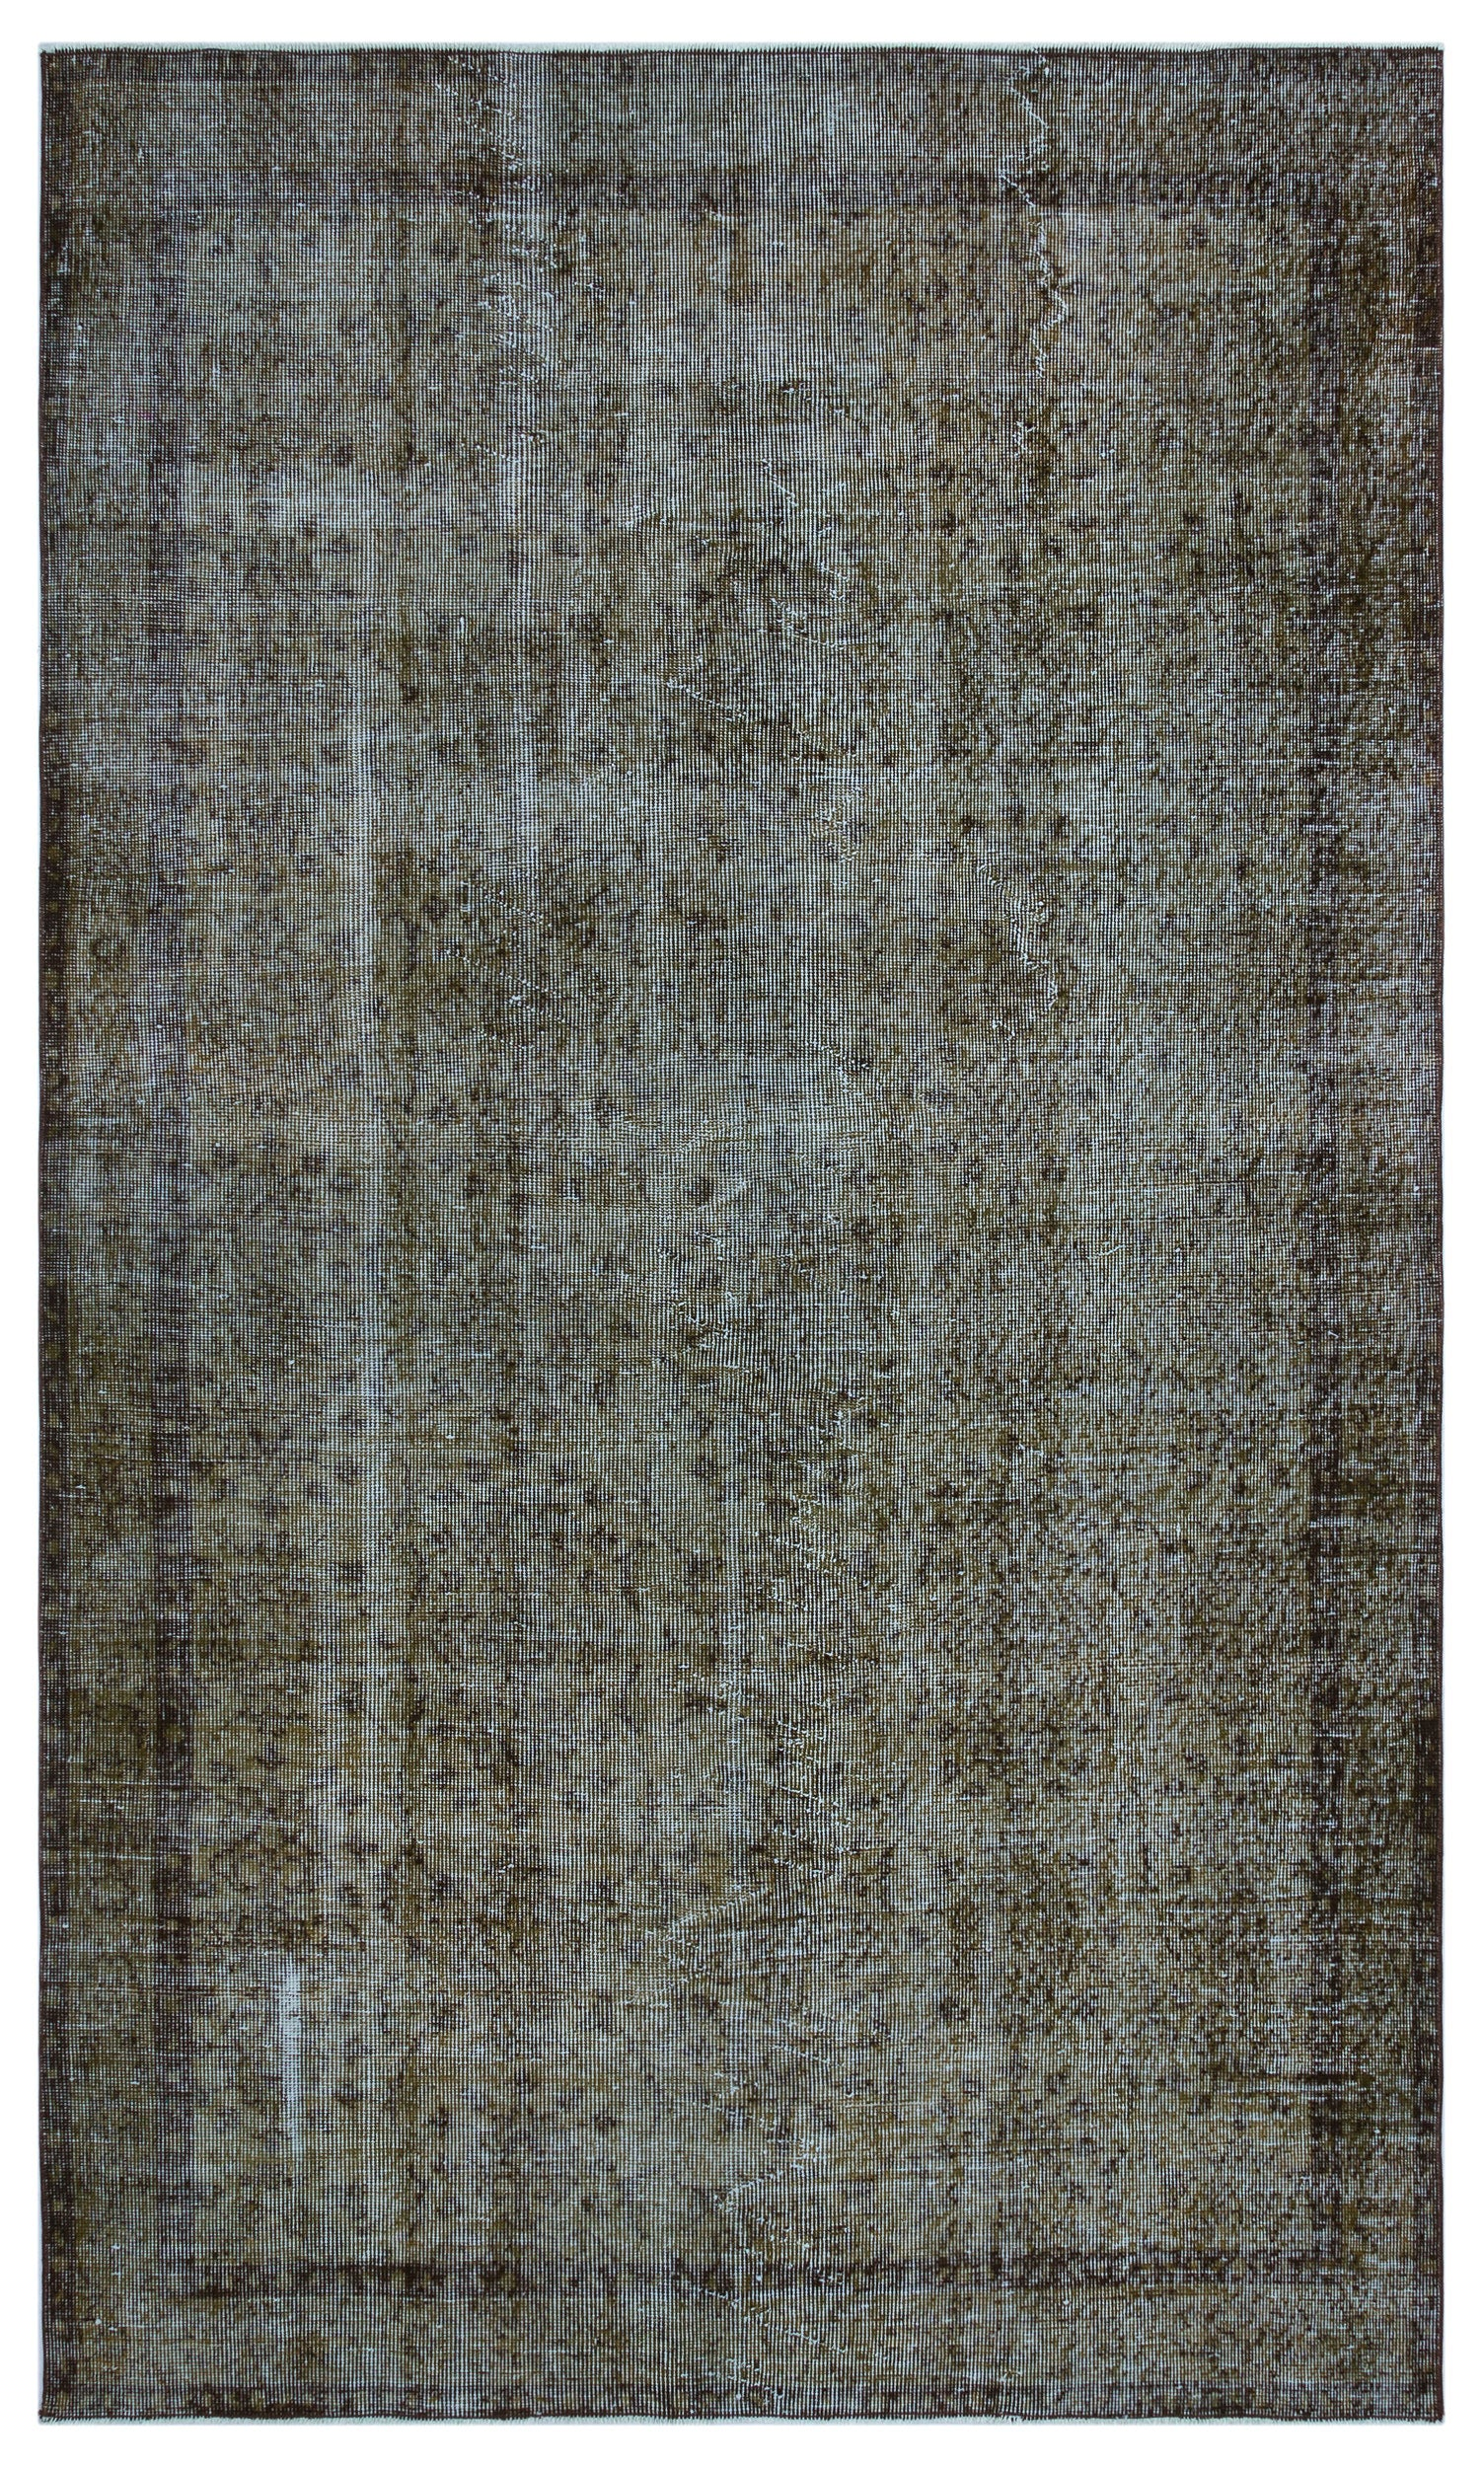 Brown Over Dyed Vintage Rug 5'1'' x 8'9'' ft 156 x 266 cm